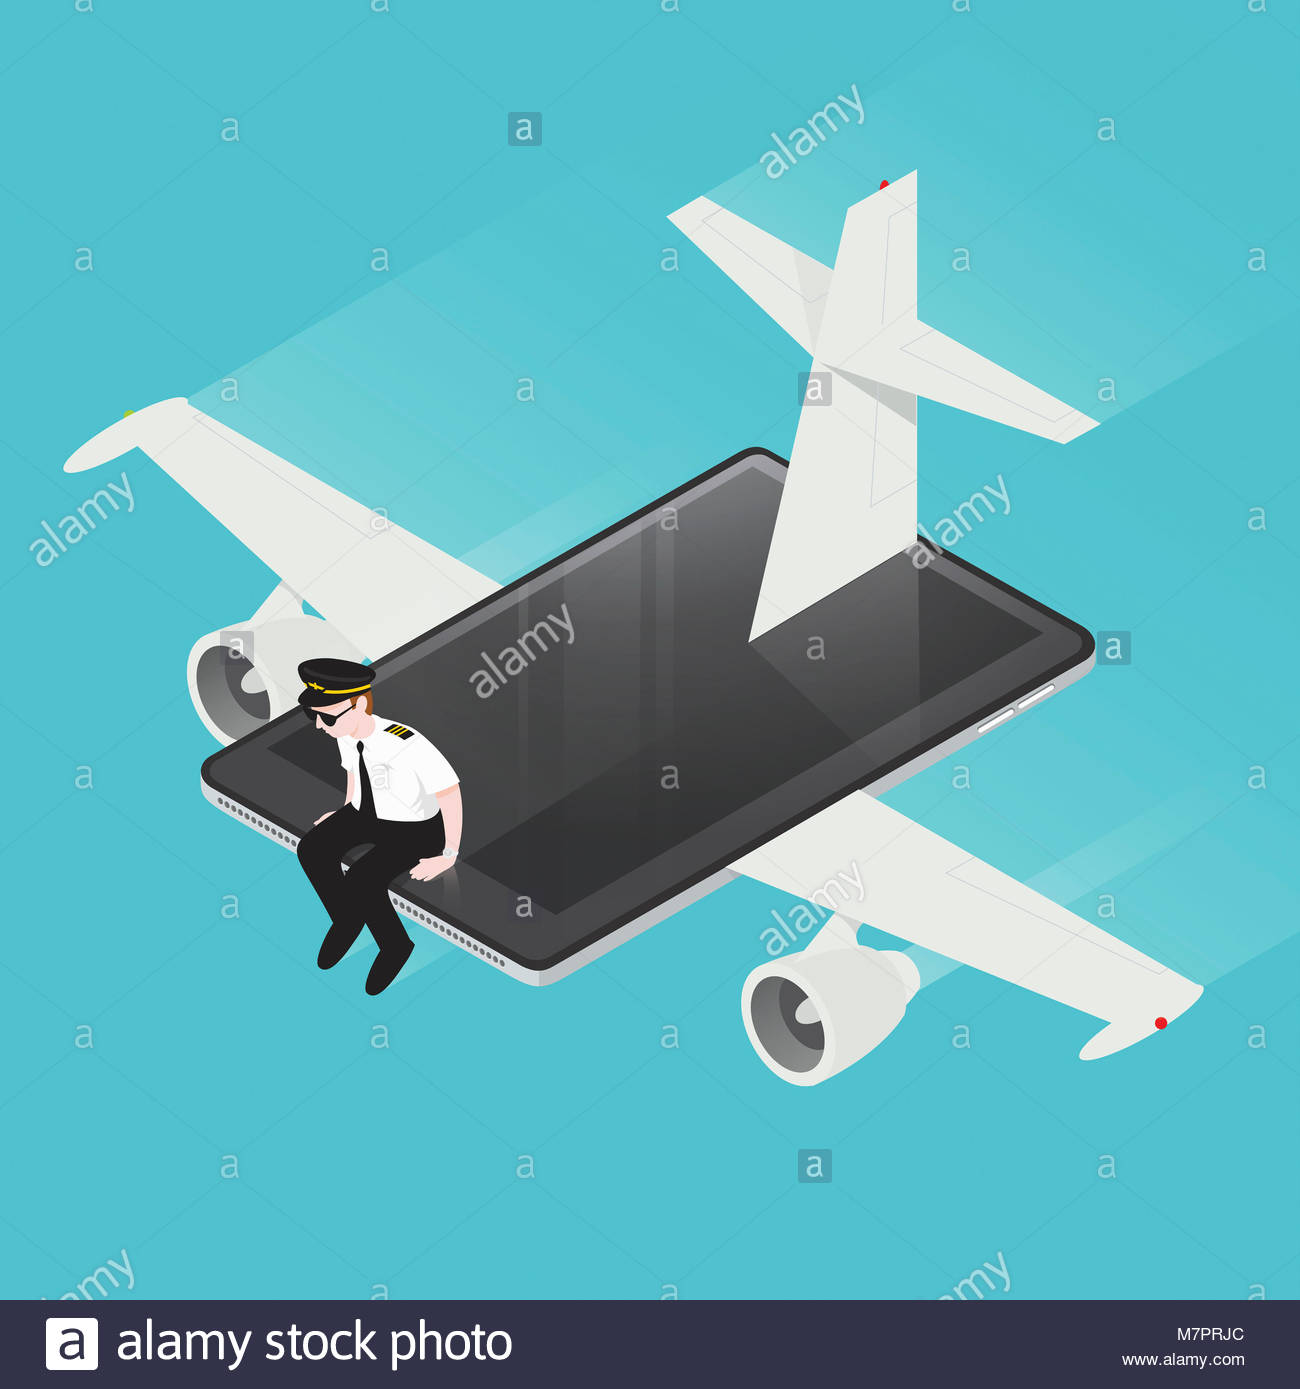 Airline pilot flying computer tablet airplane - Stock Image